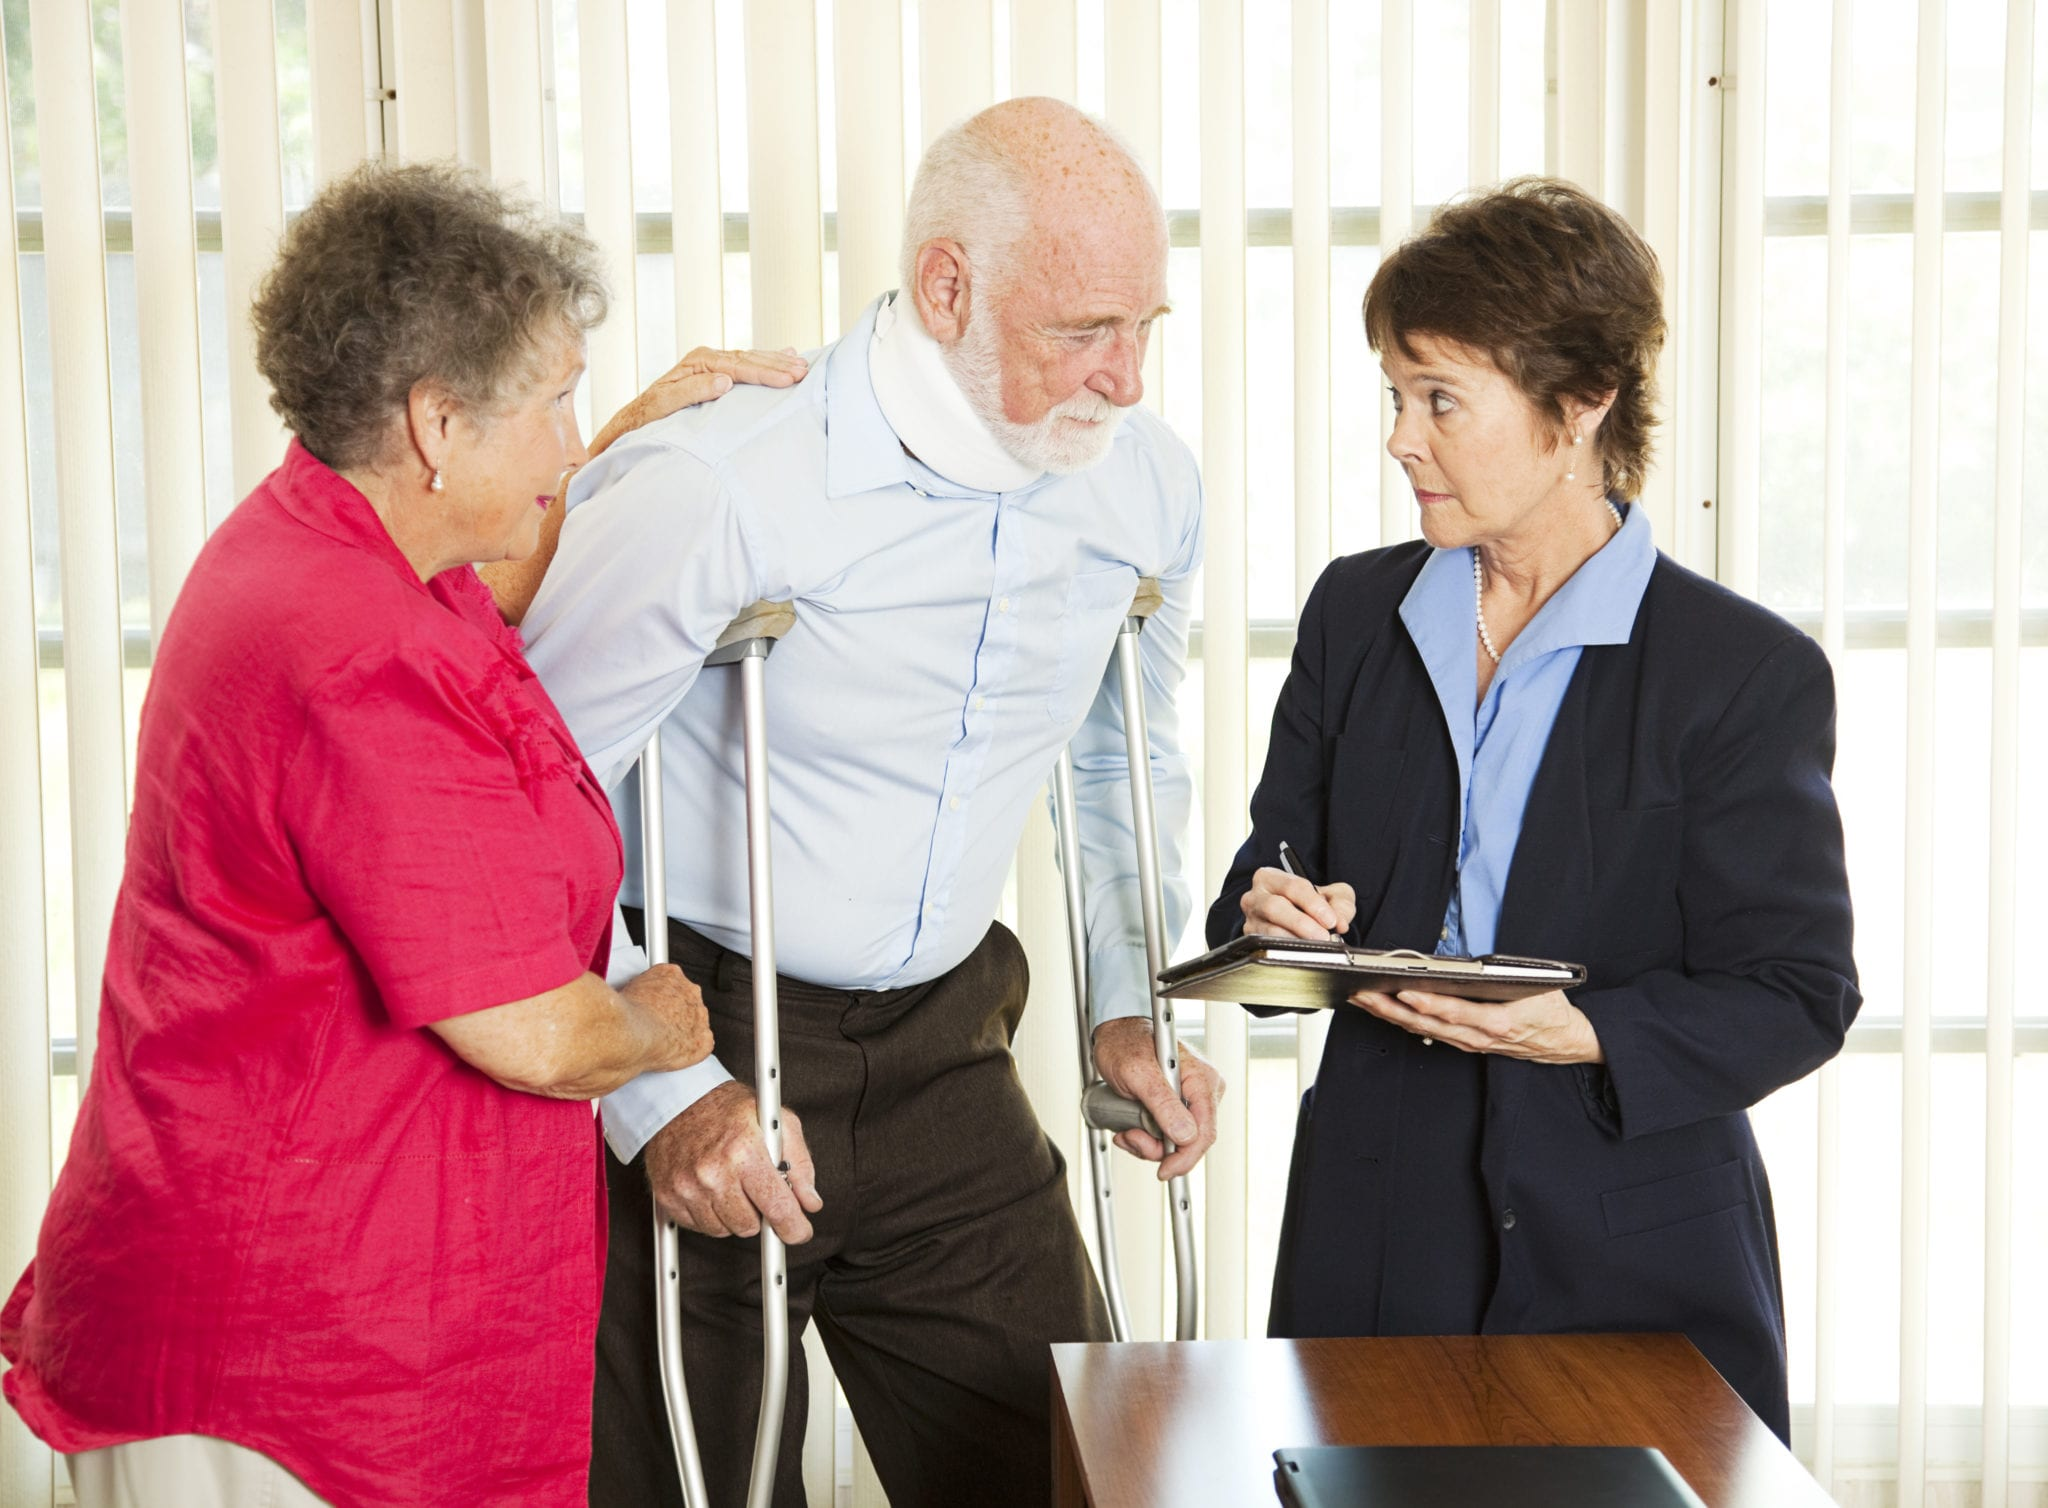 Personal Injury Leads for Lawyers